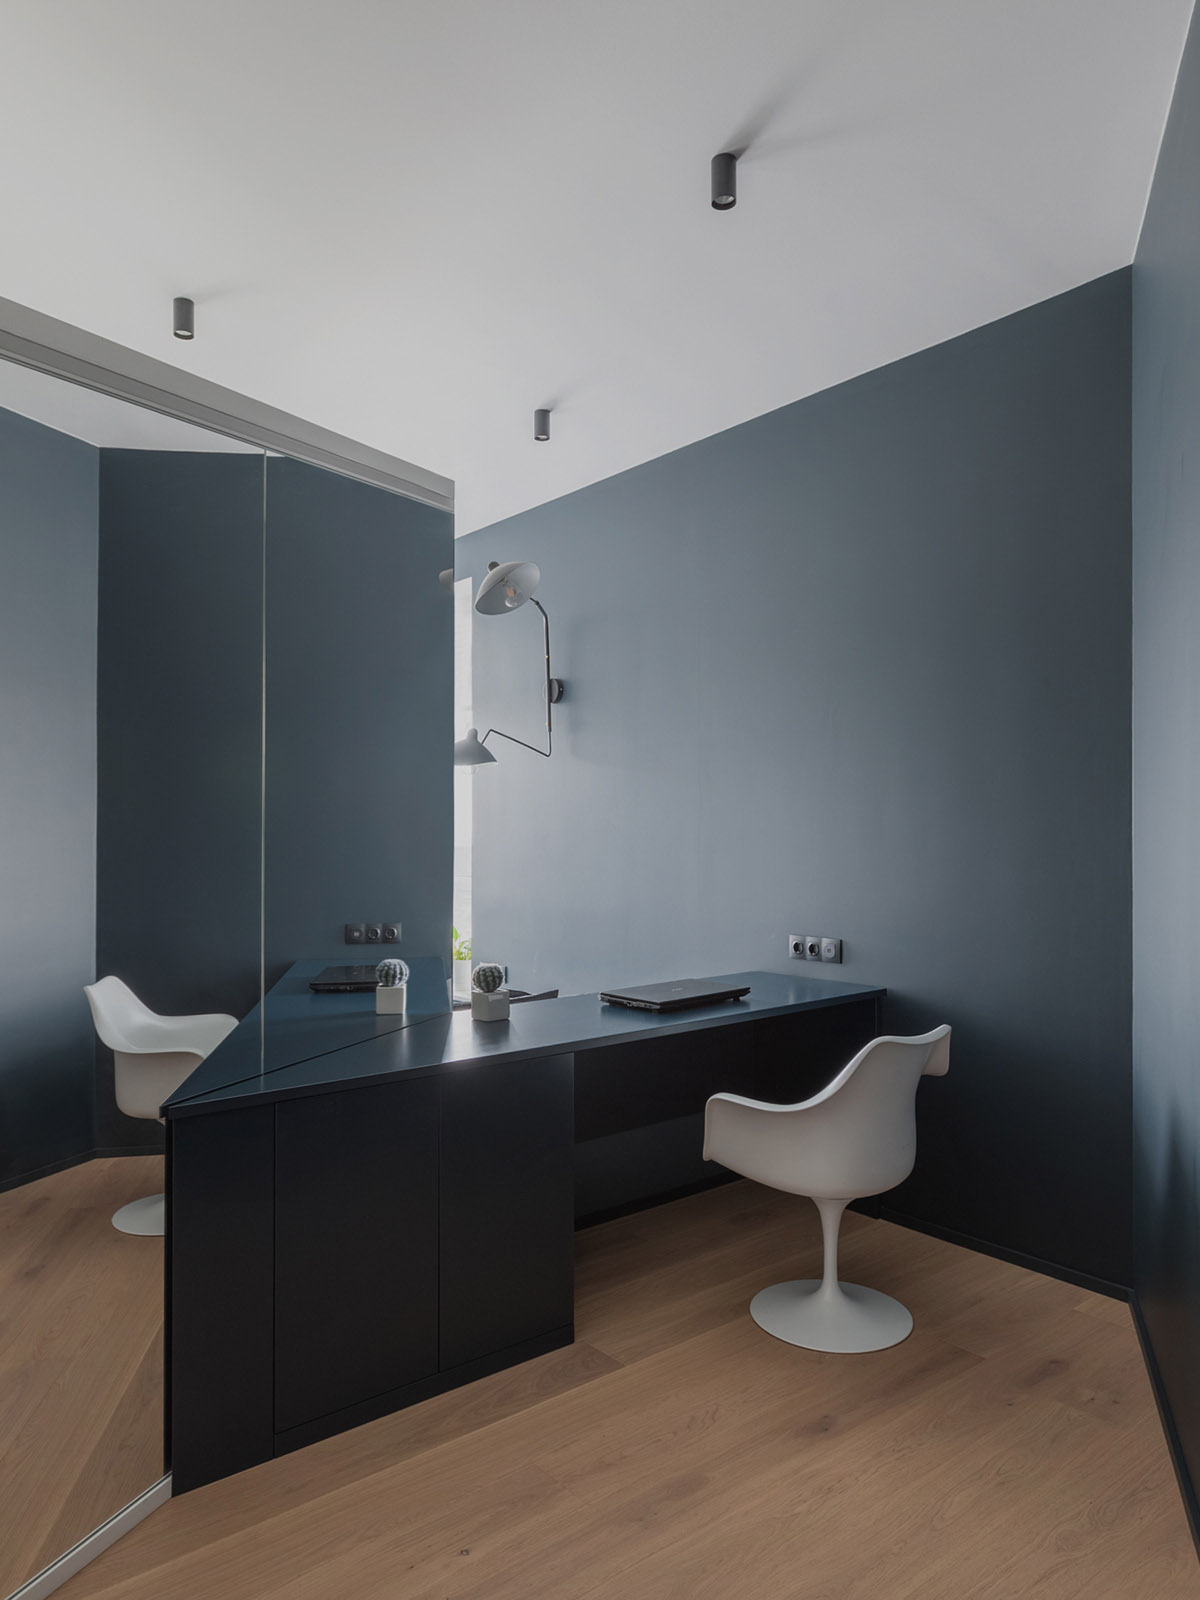 An Apartment With A Complex Geometry images 30